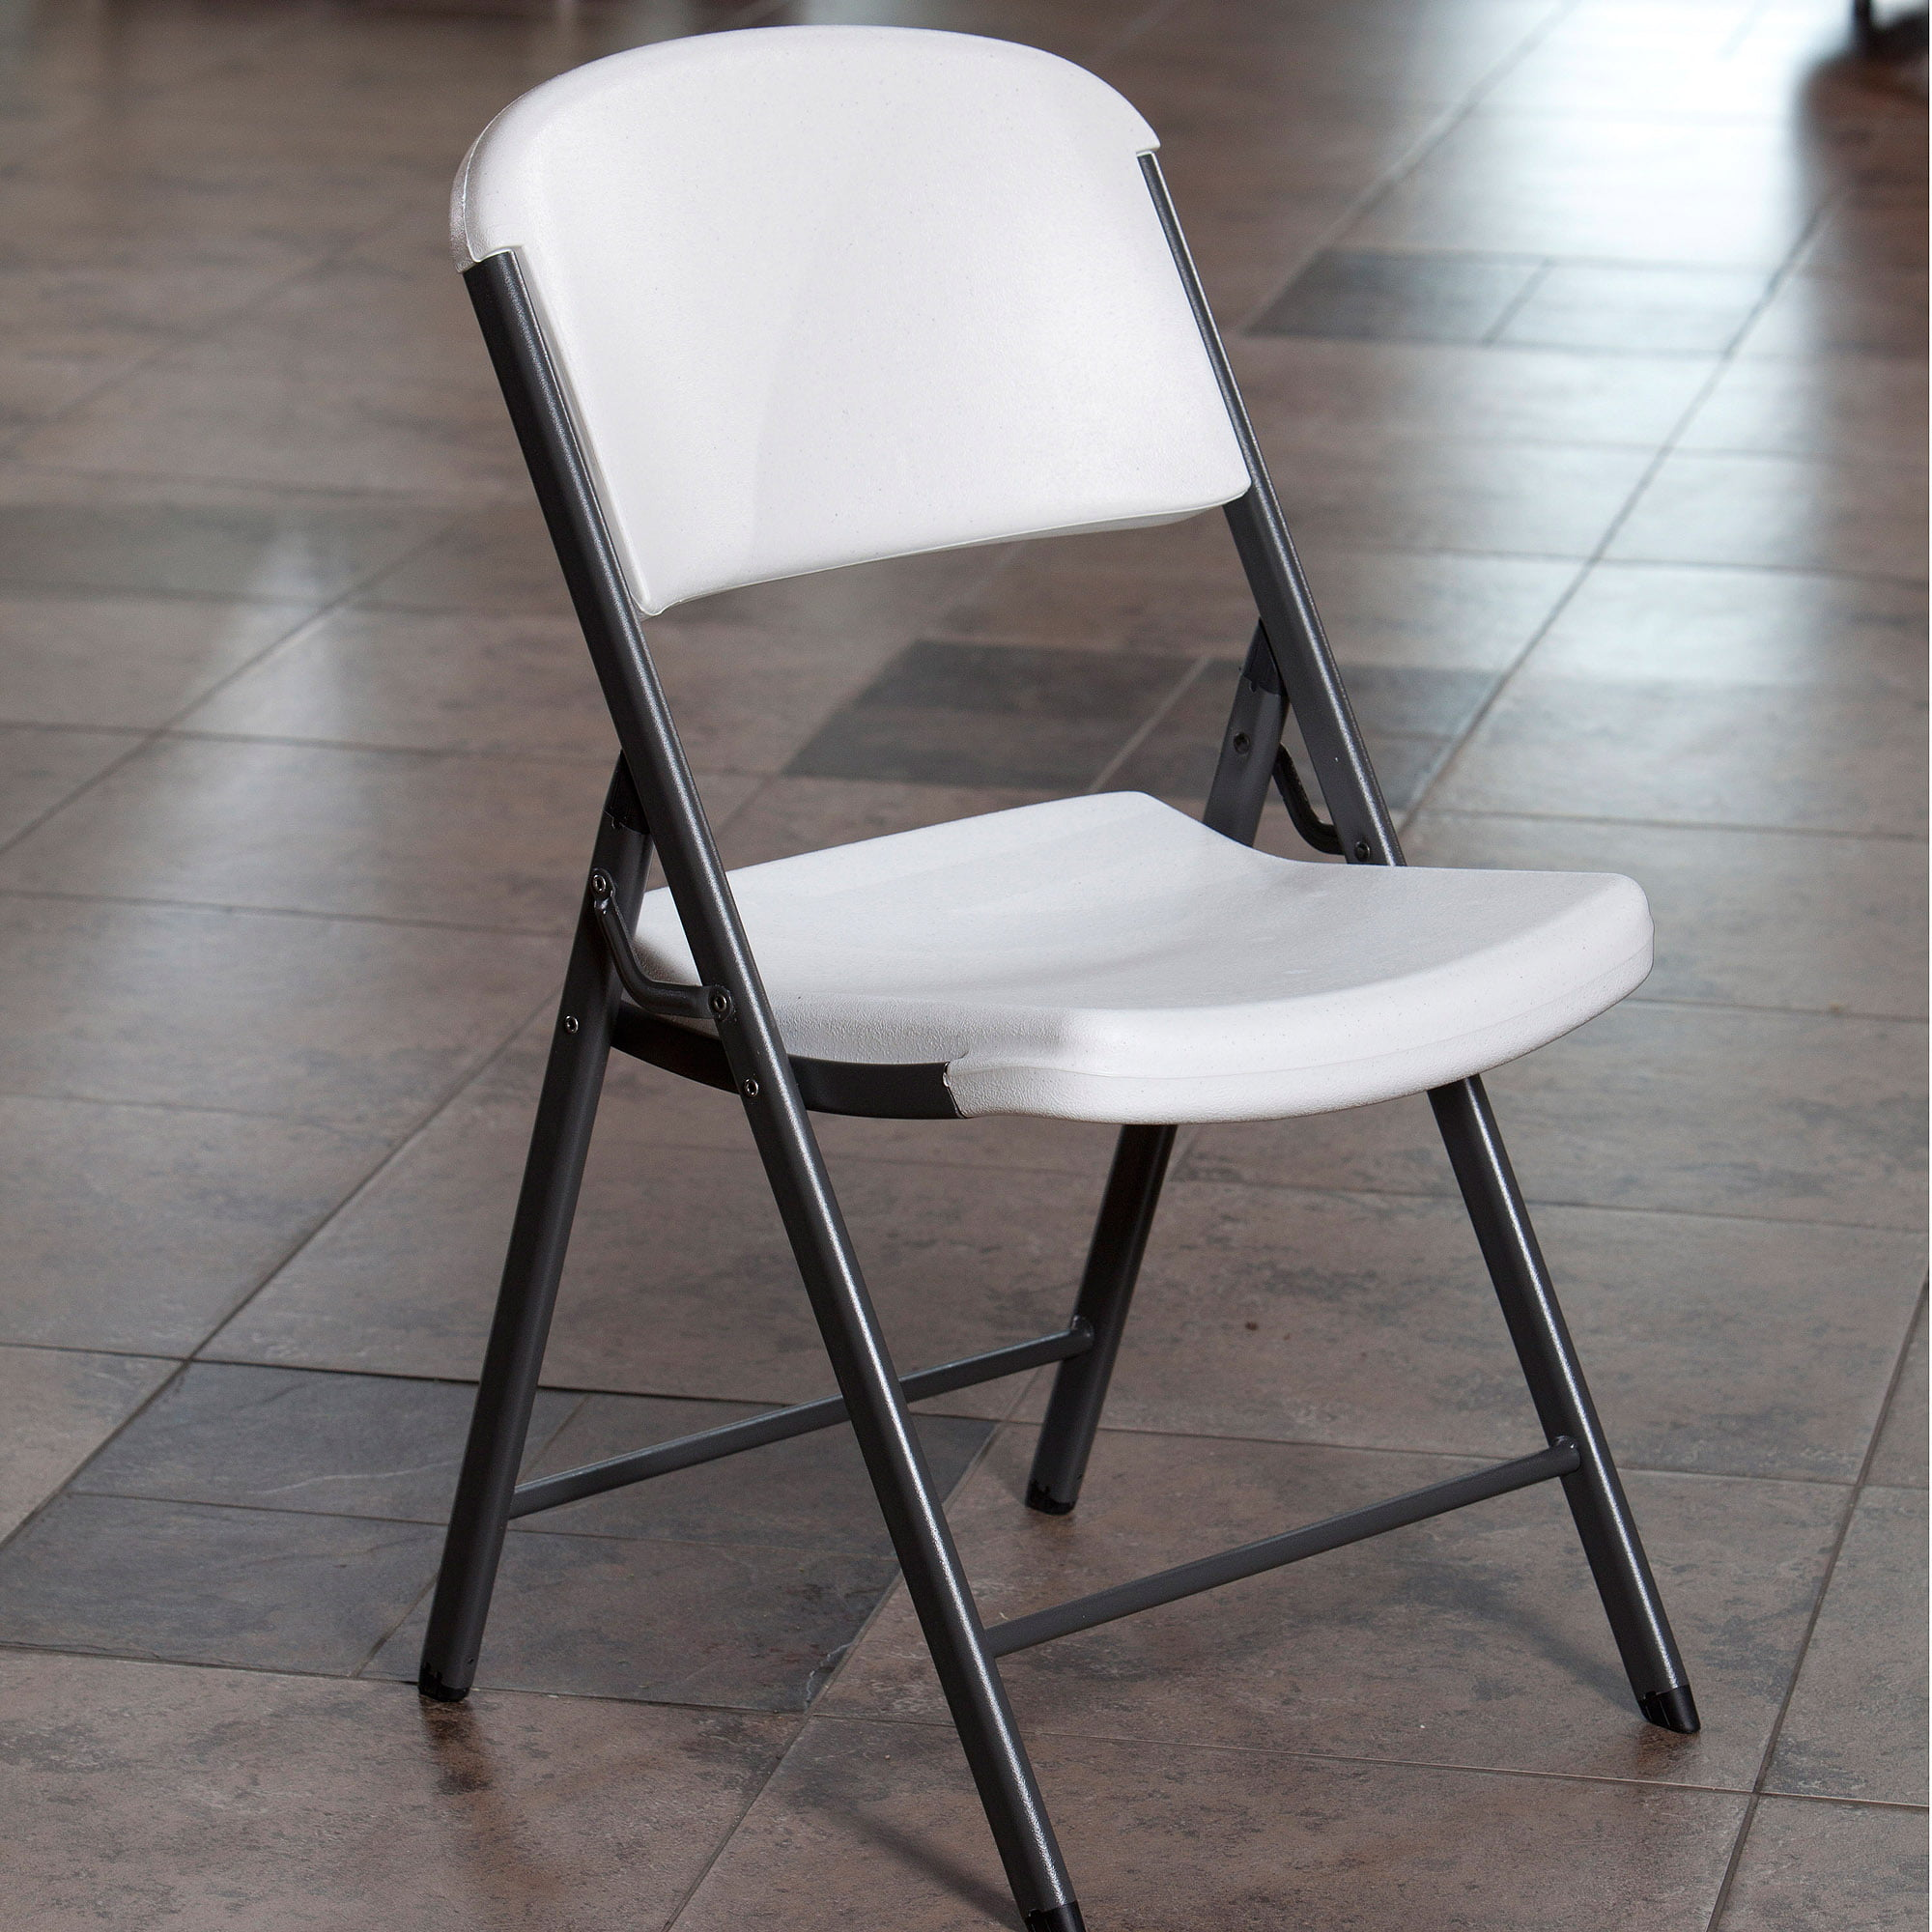 Mainstays Steel Chair Black Walmart